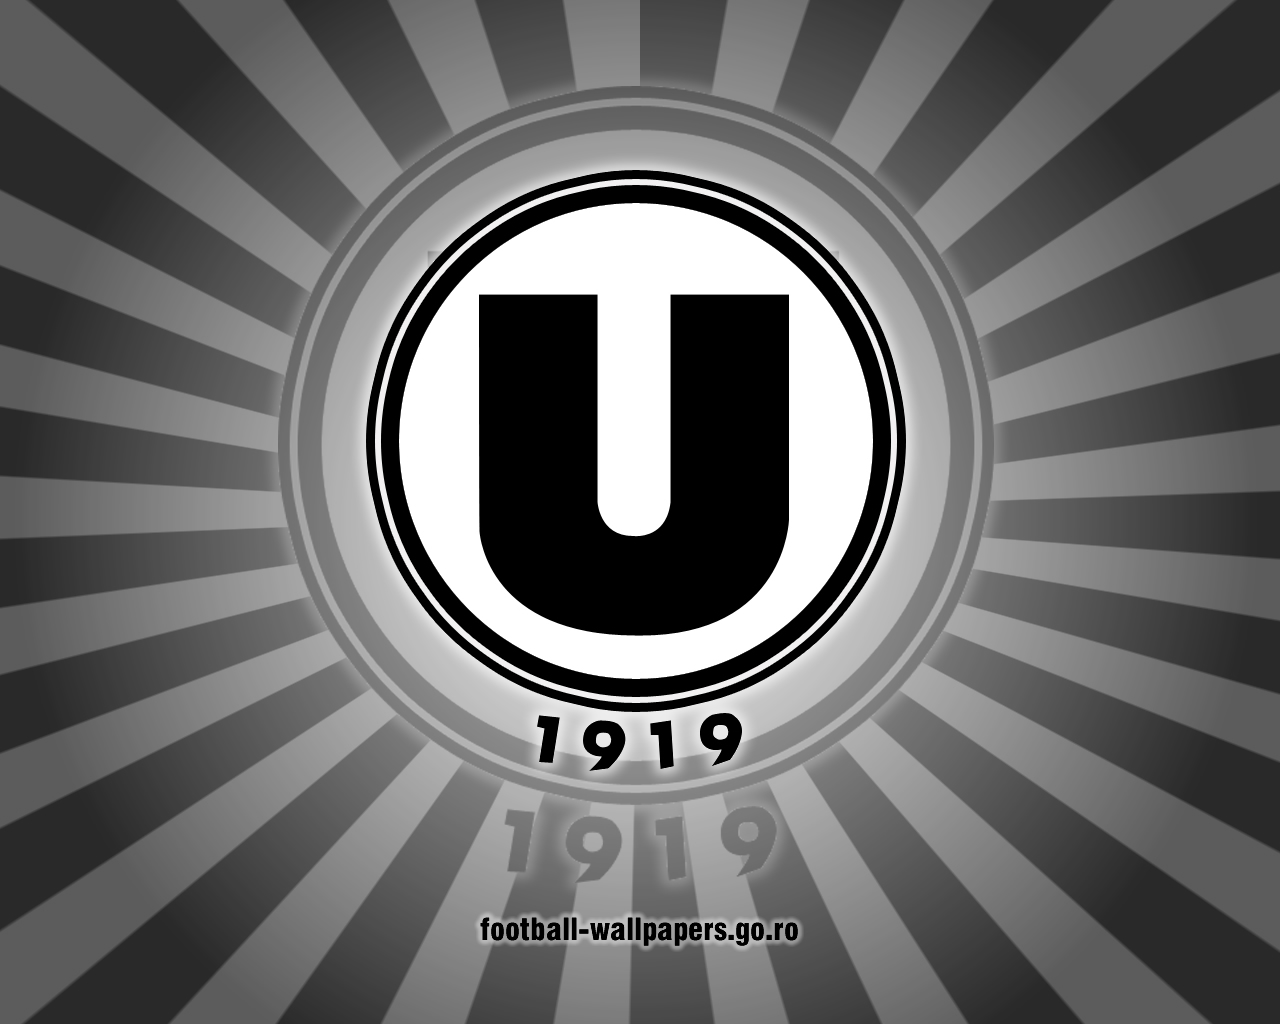 Football wallpapers: Universitatea Cluj wallpaper